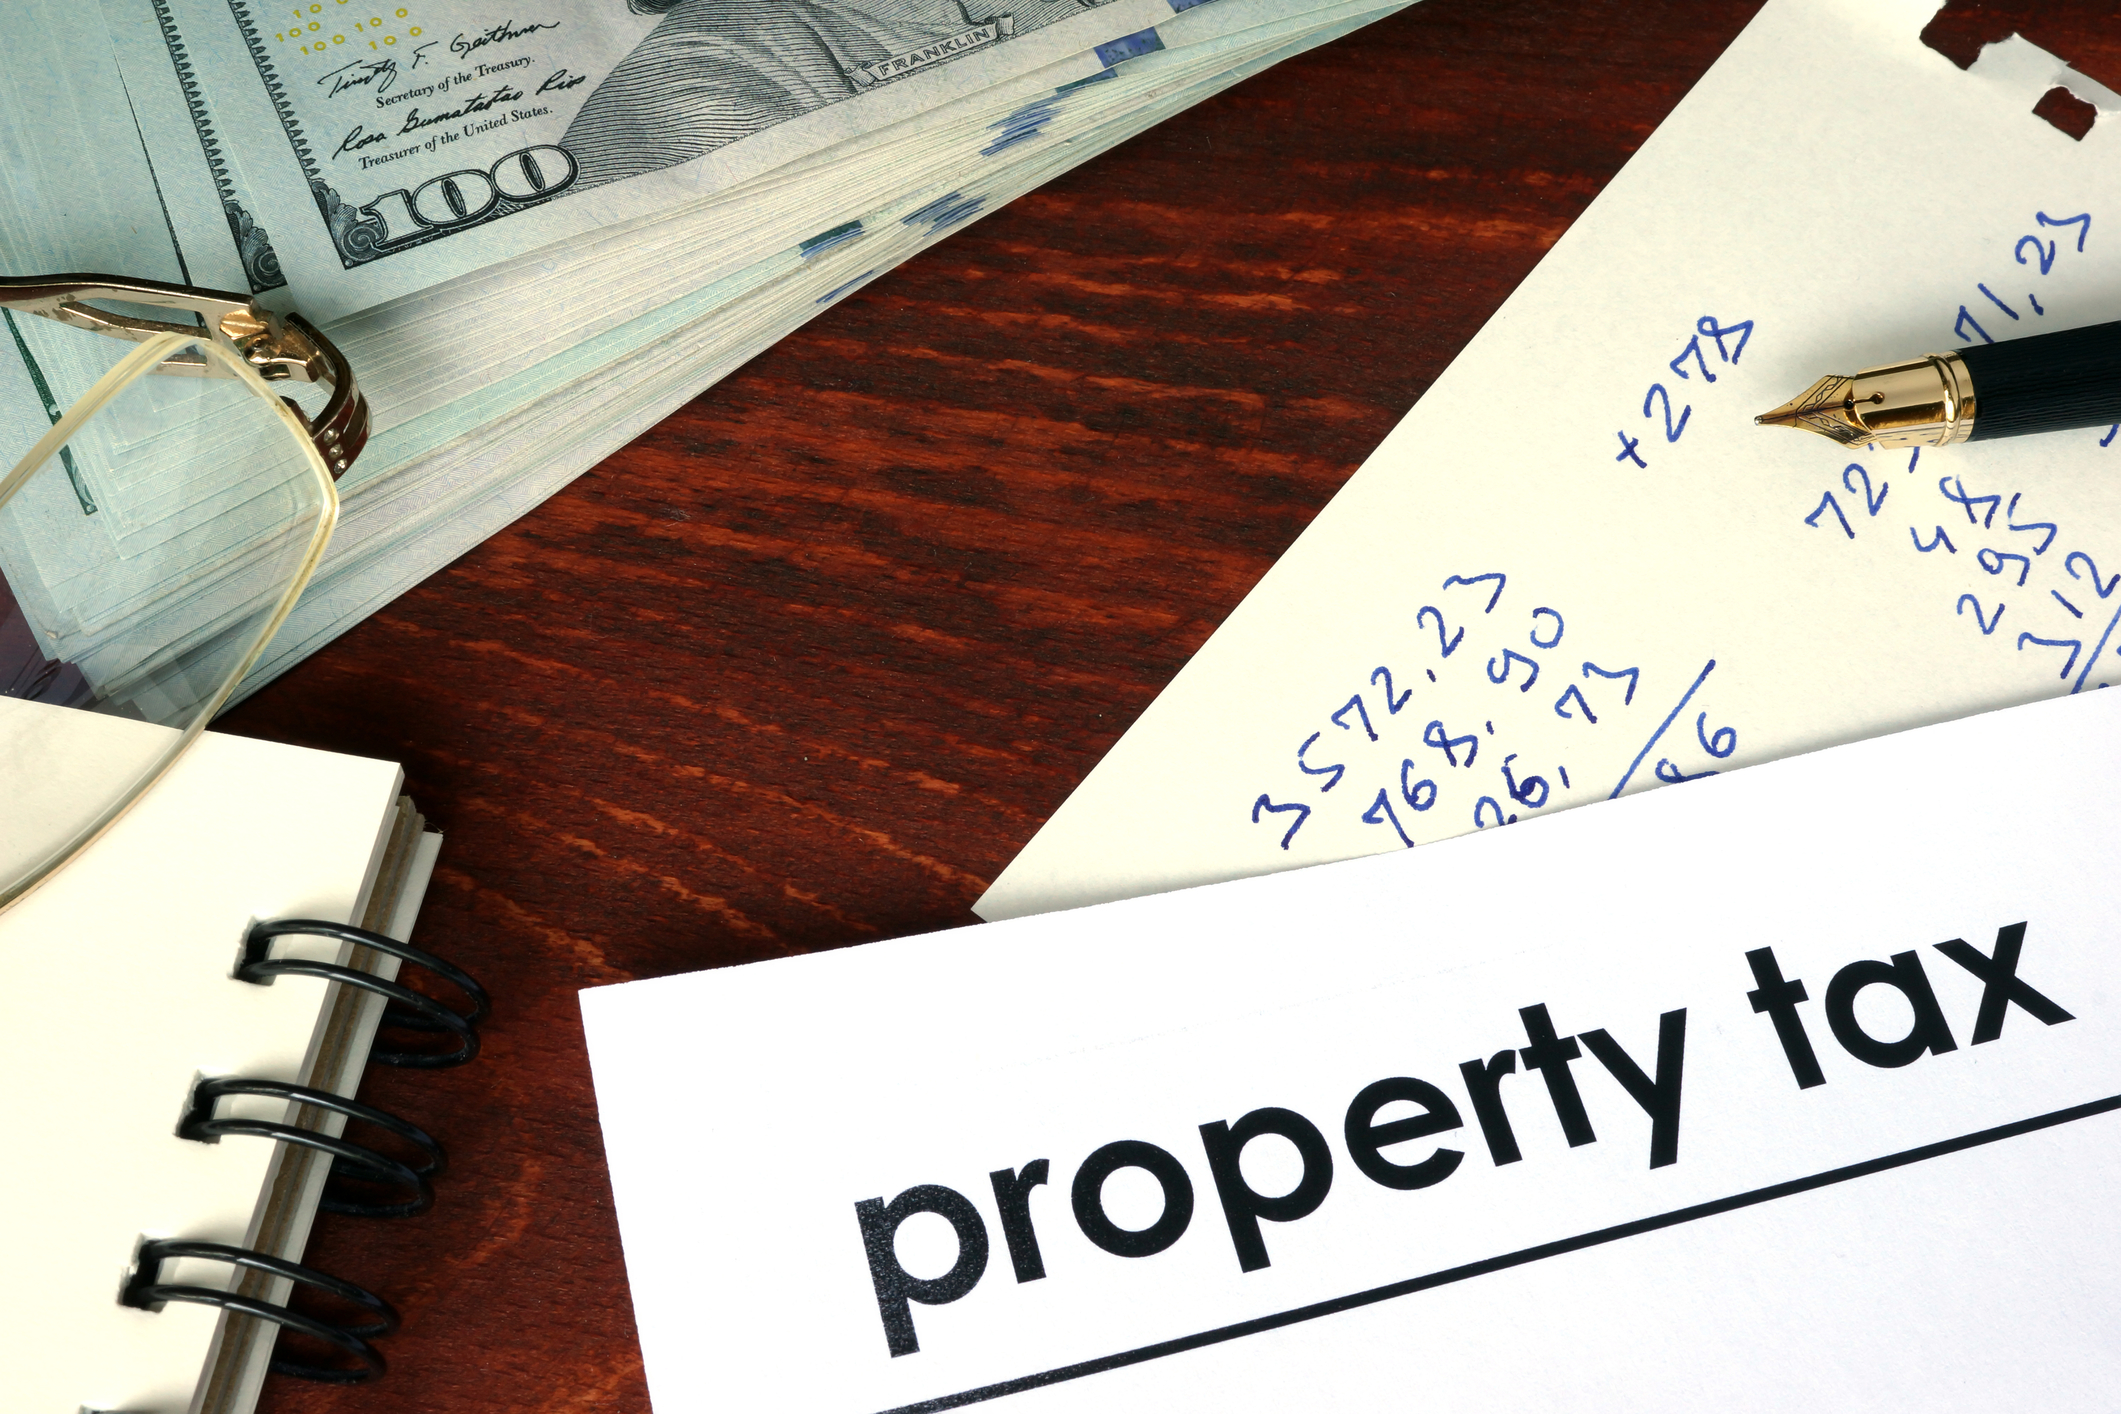 Too much tax on your home? Here's how to challenge your assessment